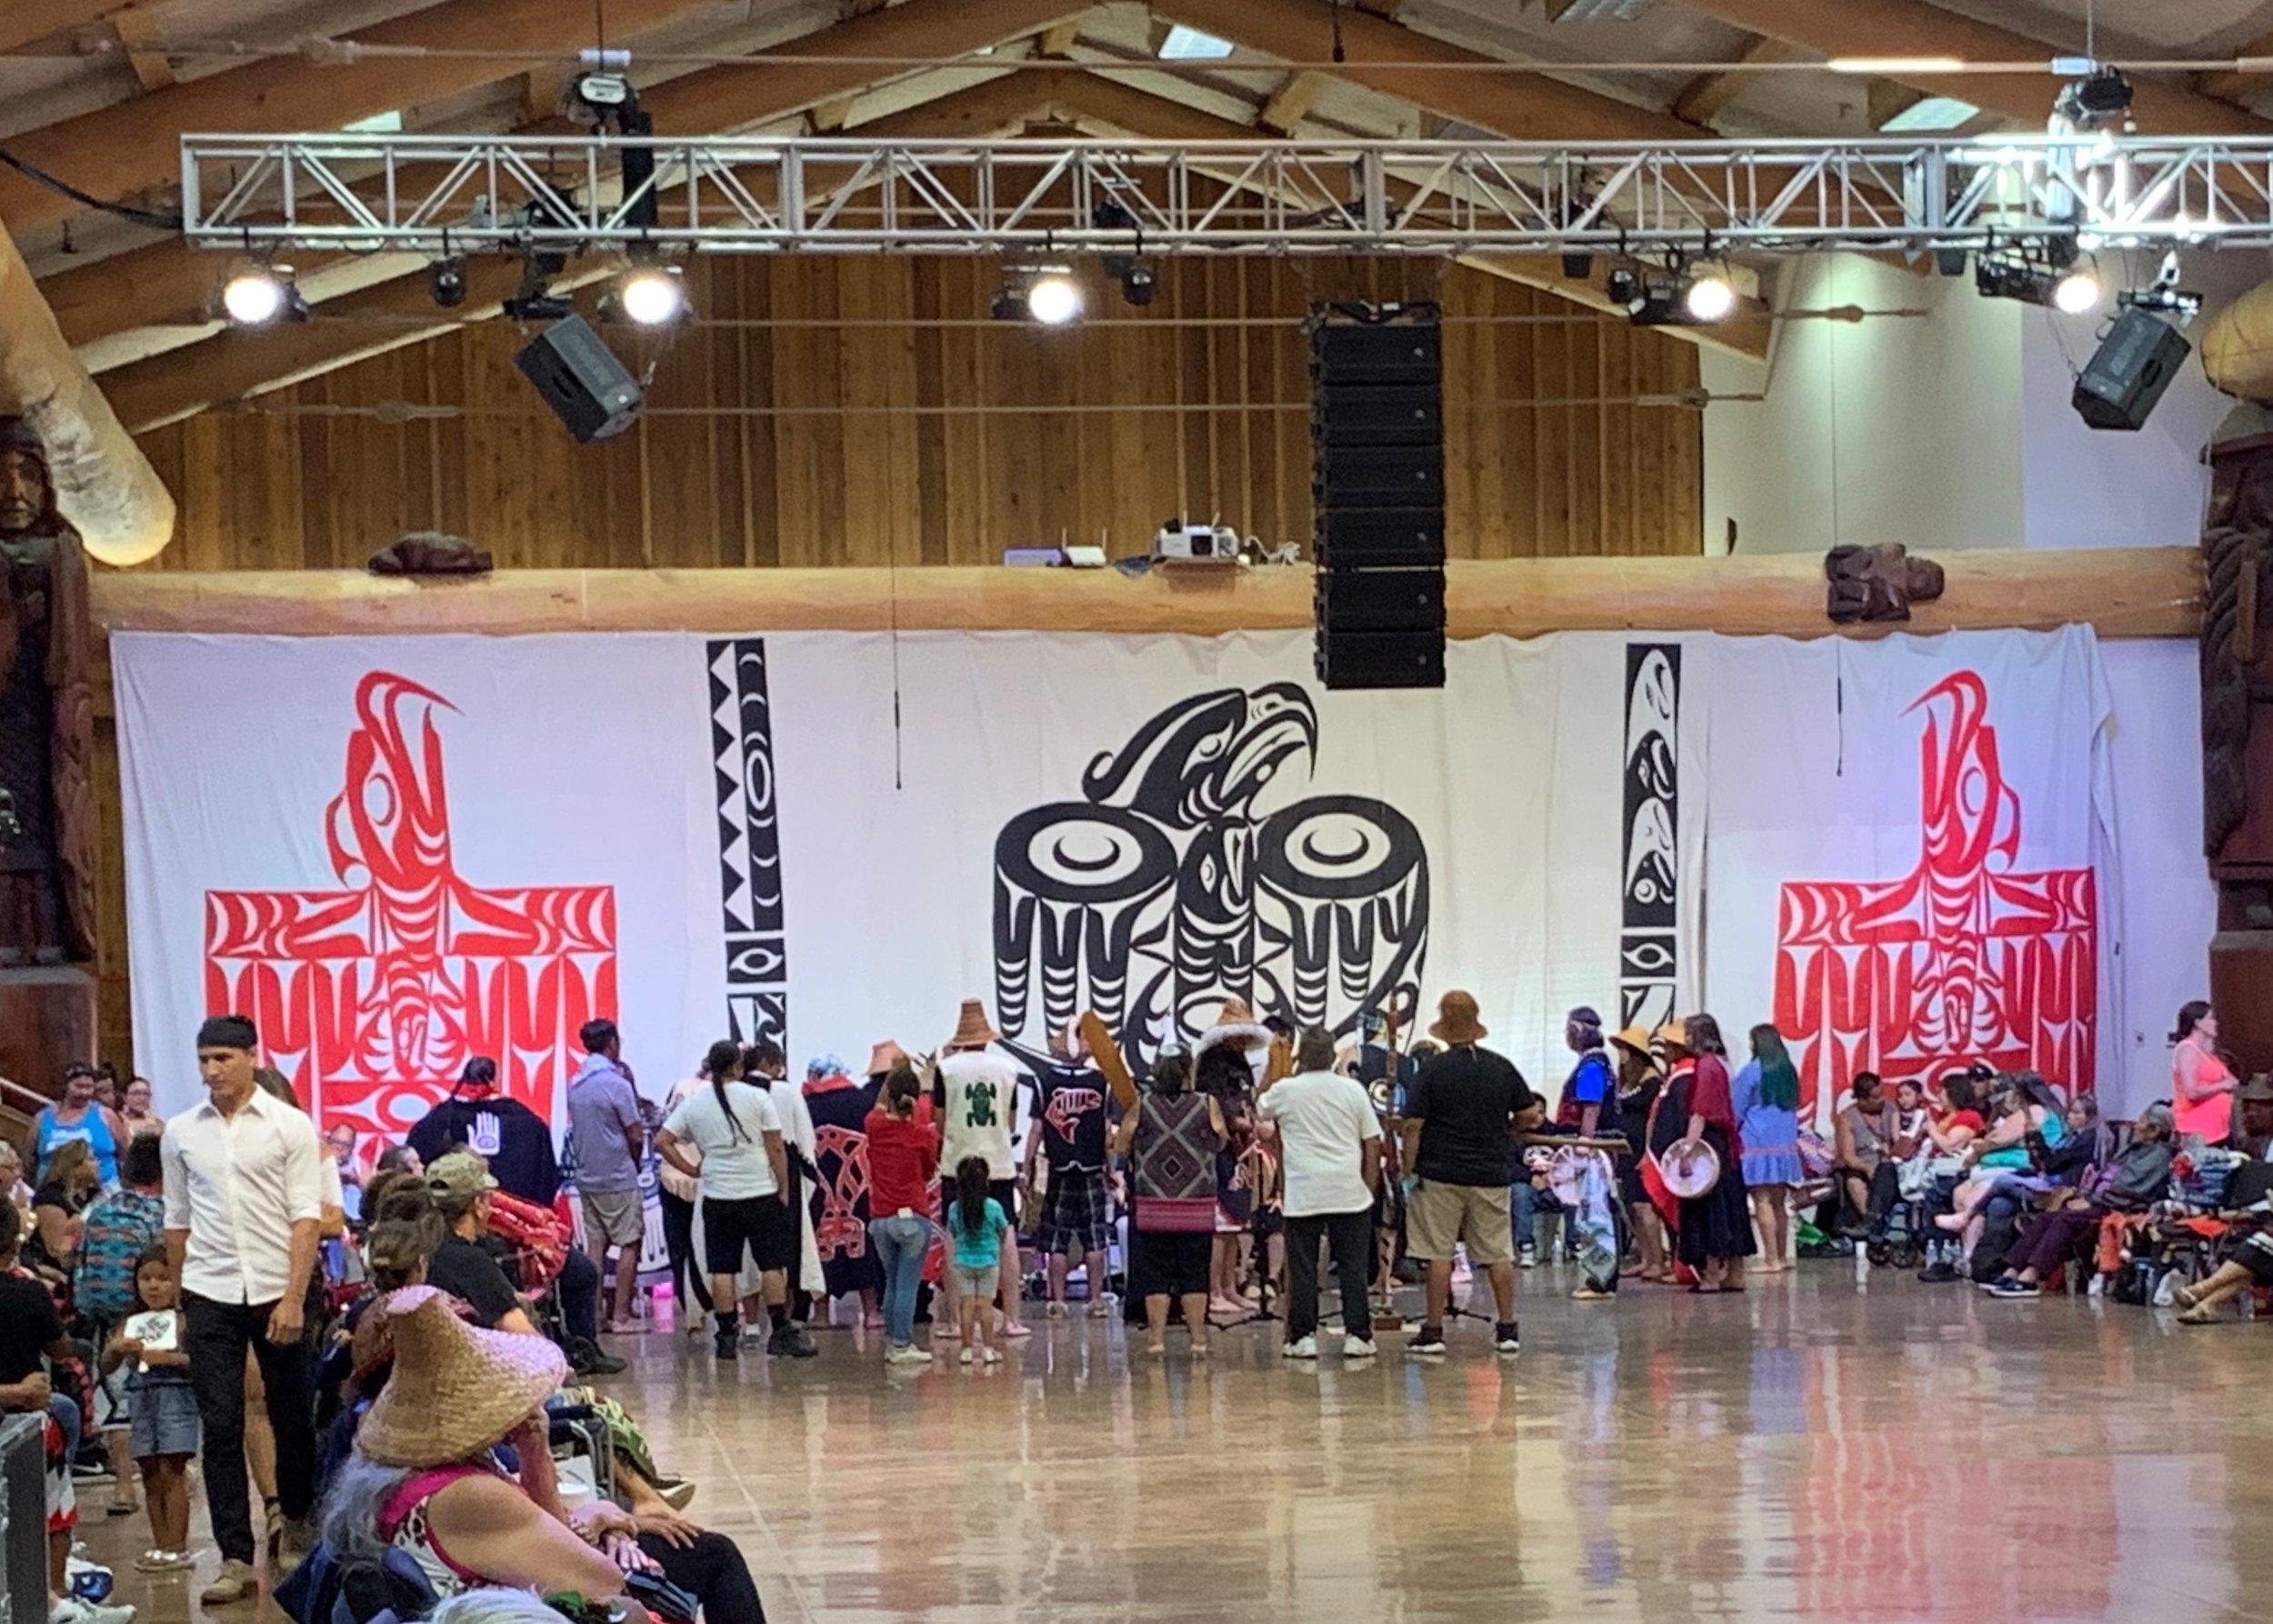 Tlingit, Tsimshian, and Haida Native Alaskan Tribes present to the Lummi Nation at Paddle to Lummi 2019. Photo by Aaron Straight.